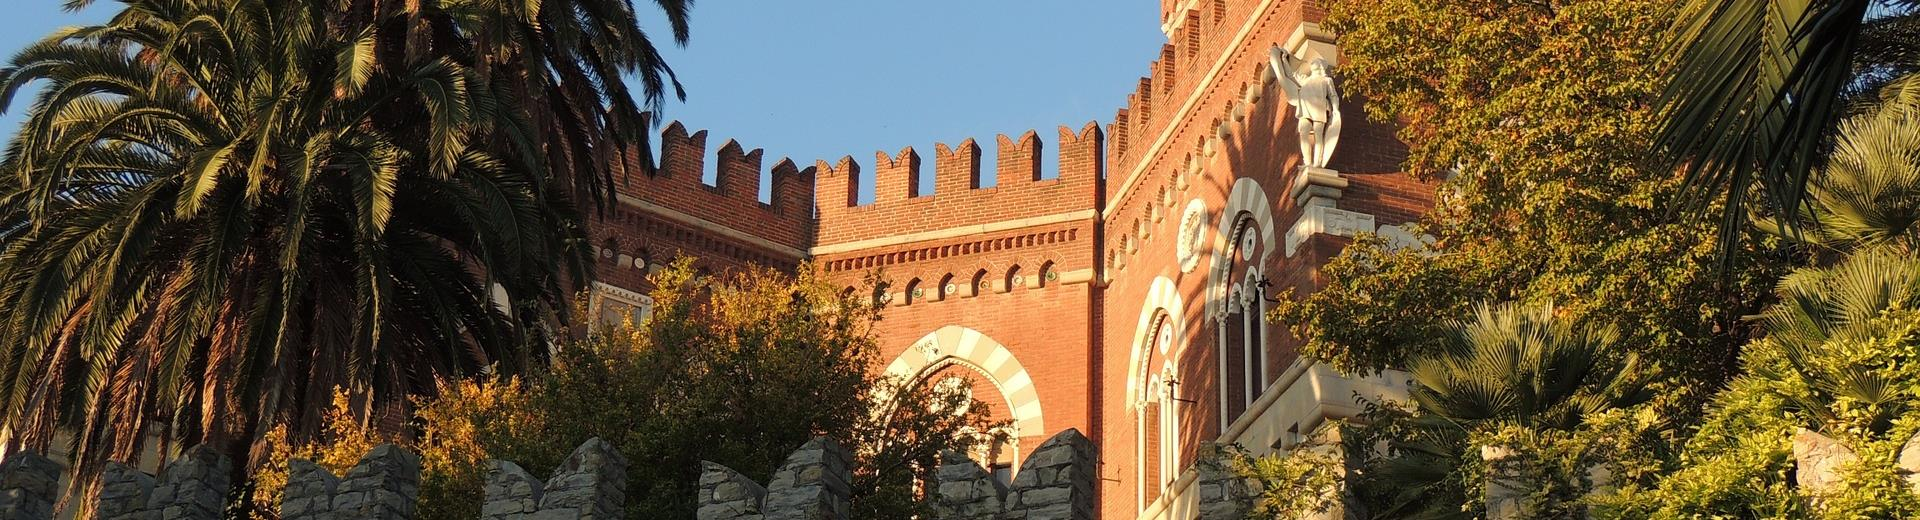 Best Western Hotel Metropoli-24h-Museum Card Offer - Albertis Castle